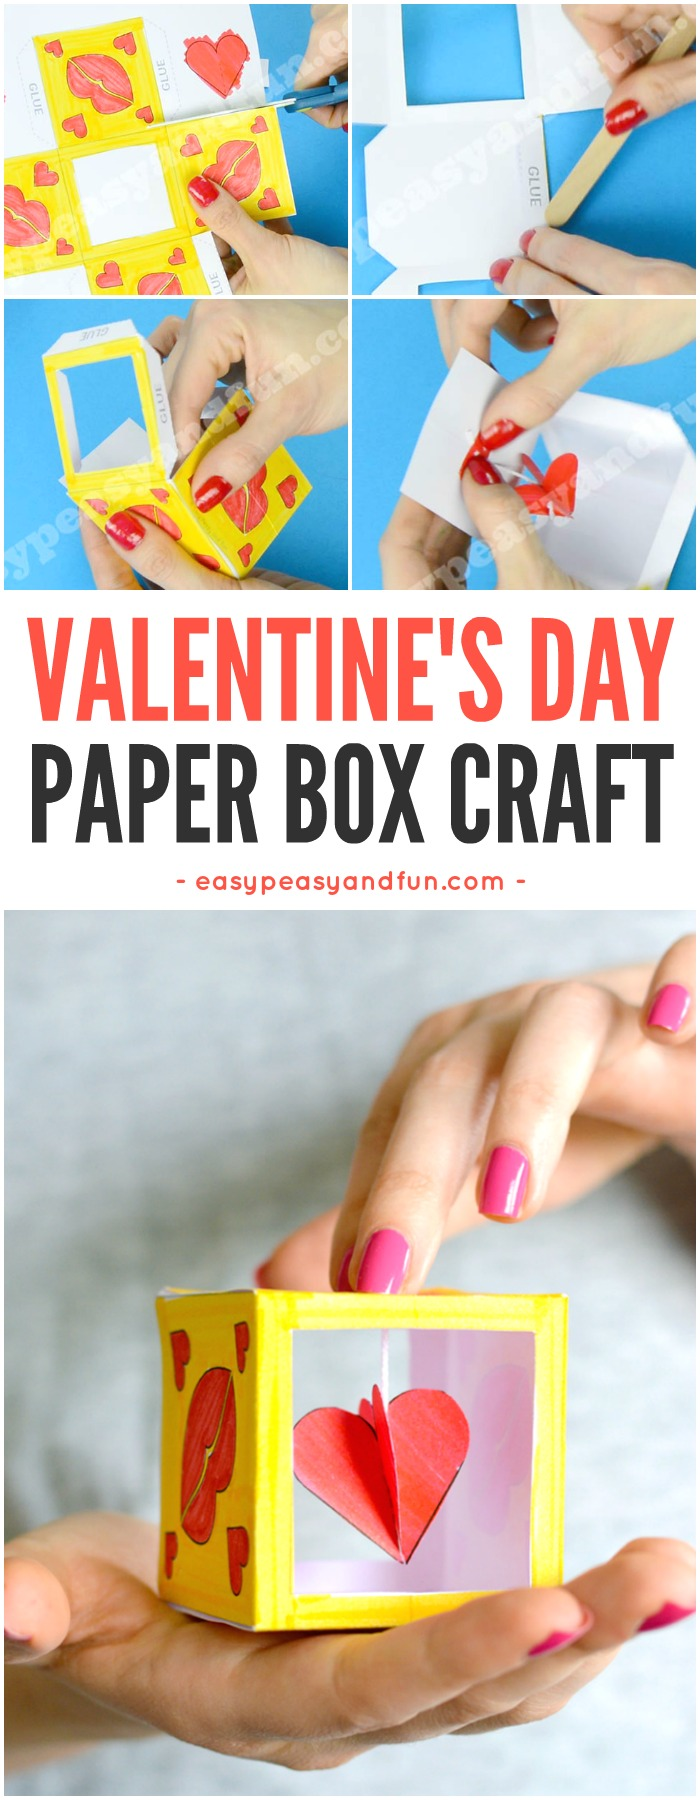 Valentine's day box paper craft for kids to make. Fun paper craft idea to keep the kids busy and entertained. #Valentinesdaycraftsforkids #papercraftsforkids #heartcraftsforkids